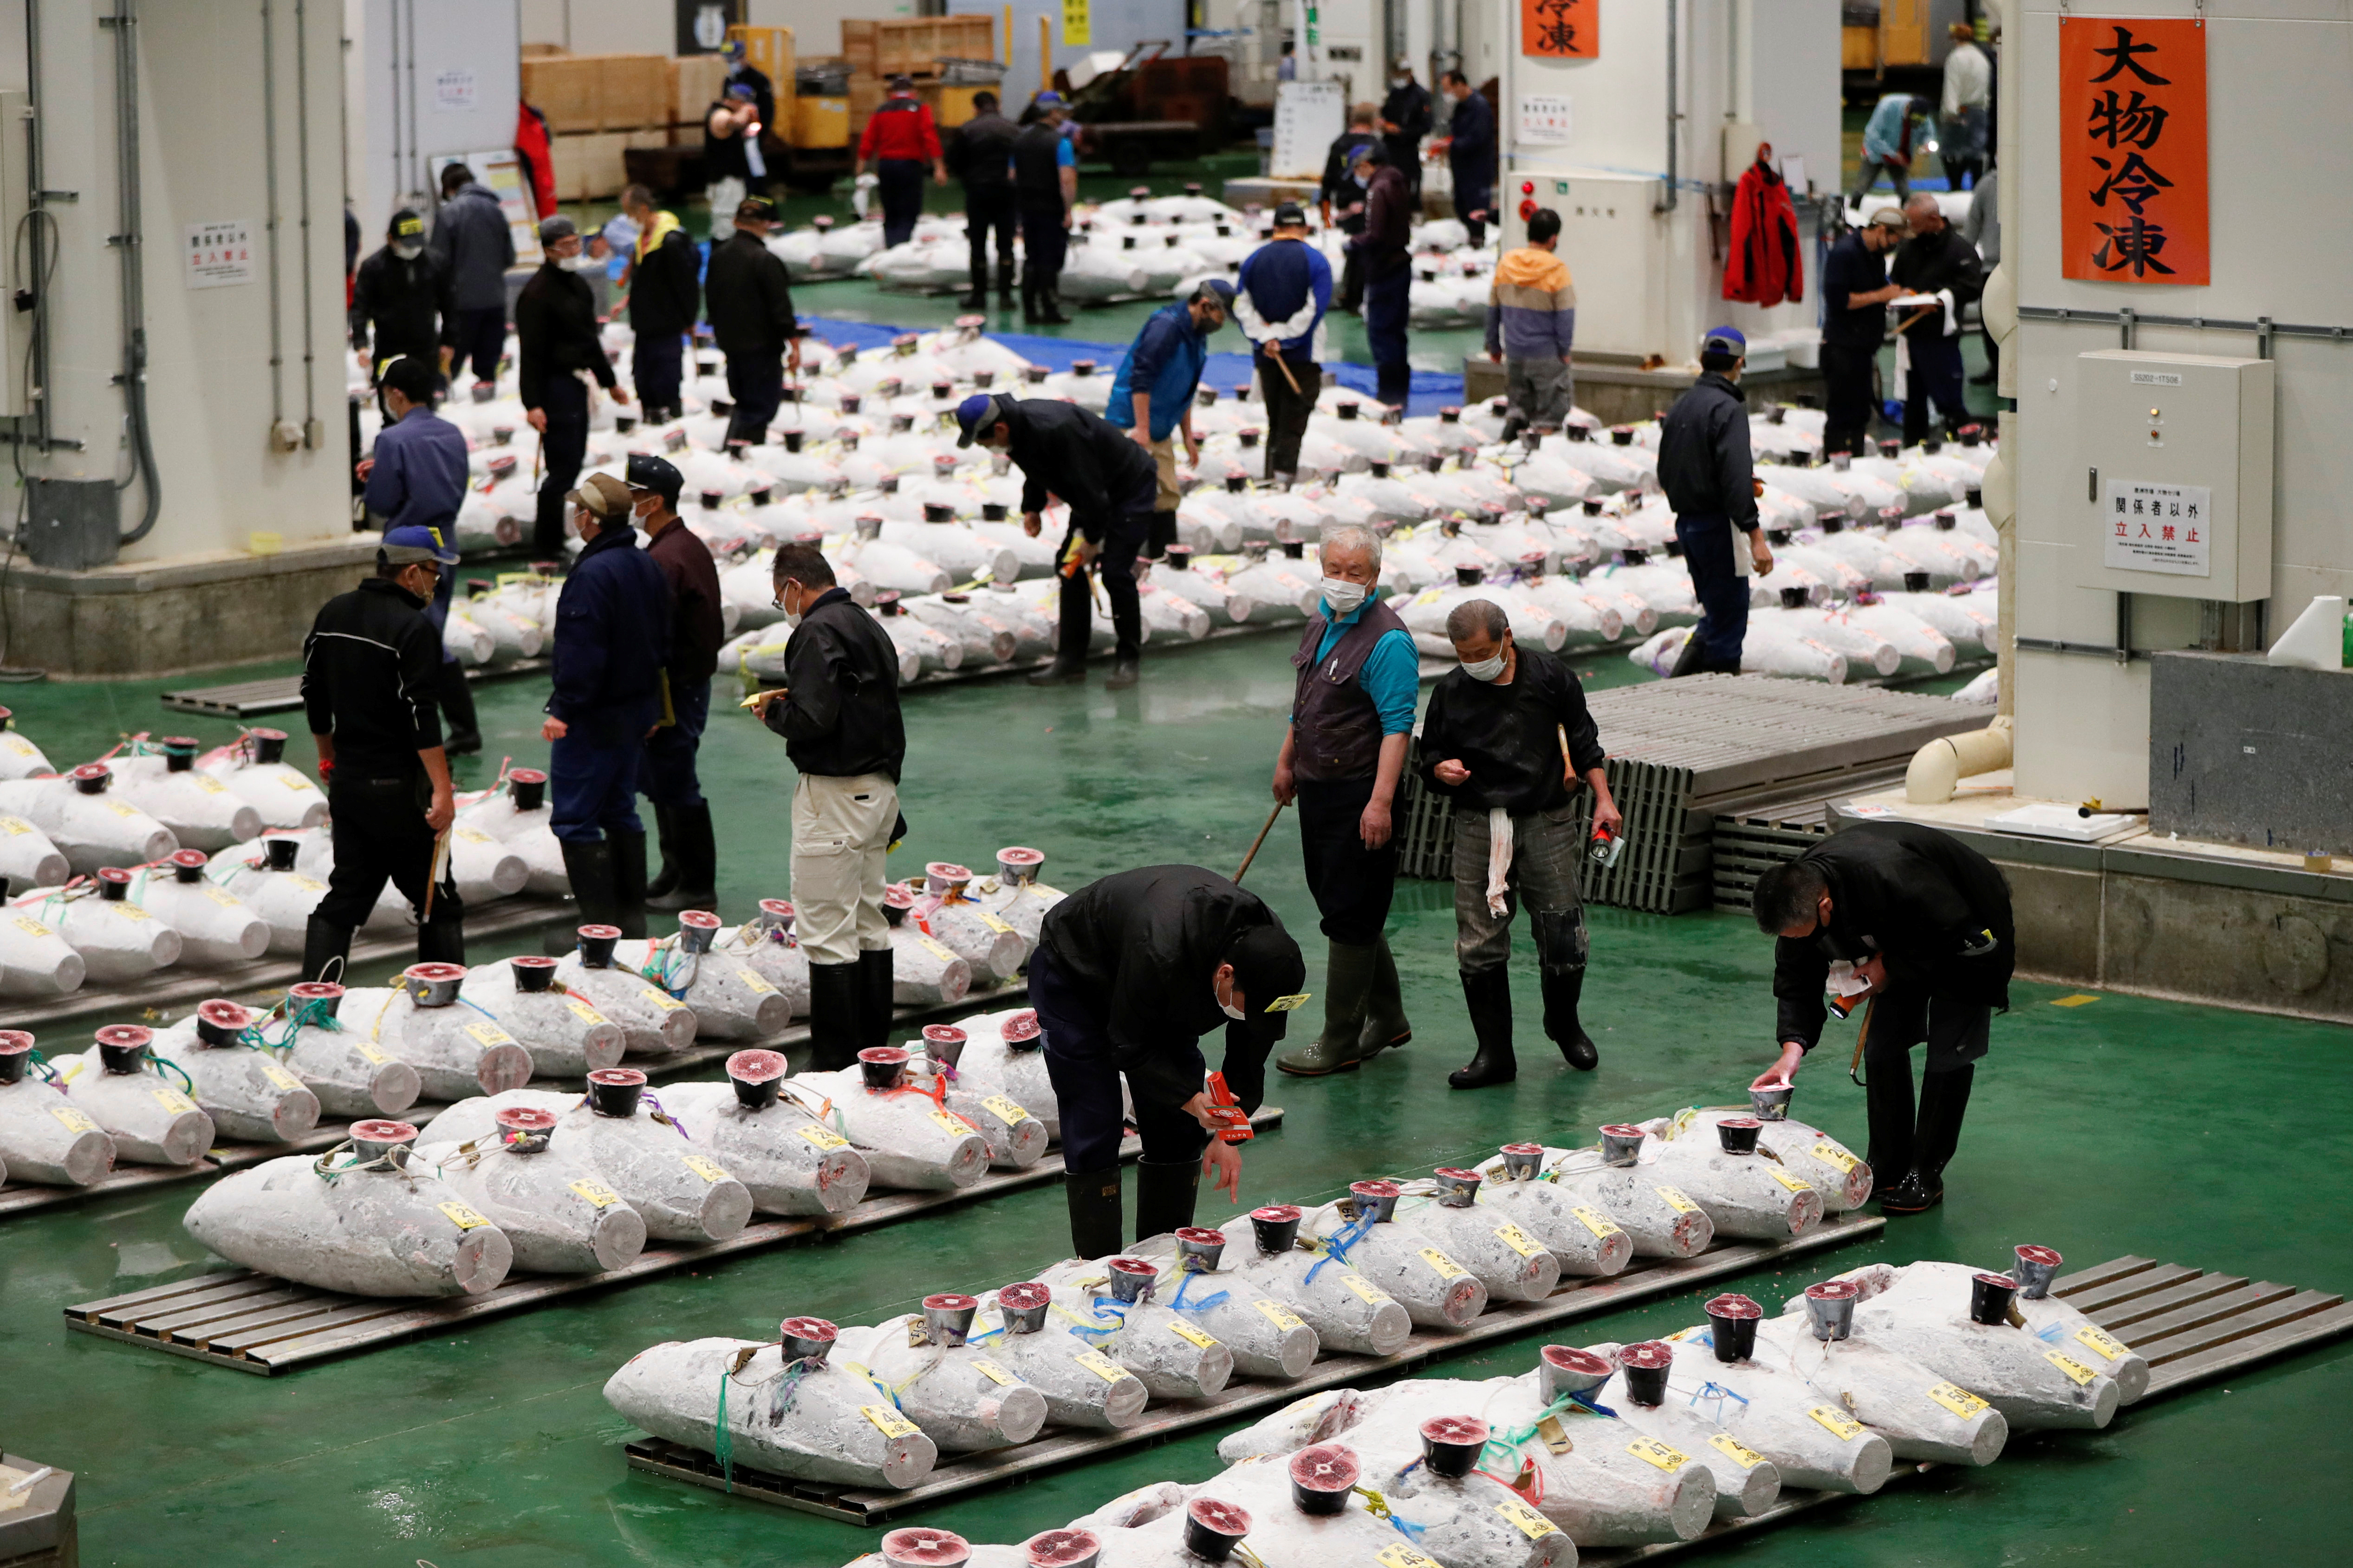 Wholesalers check the quality of frozen tuna displayed during the tuna auctions, amid the coronavirus disease (COVID-19) outbreak, at Toyosu fish market in Tokyo, Japan  August 25, 2020. REUTERS/Issei Kato